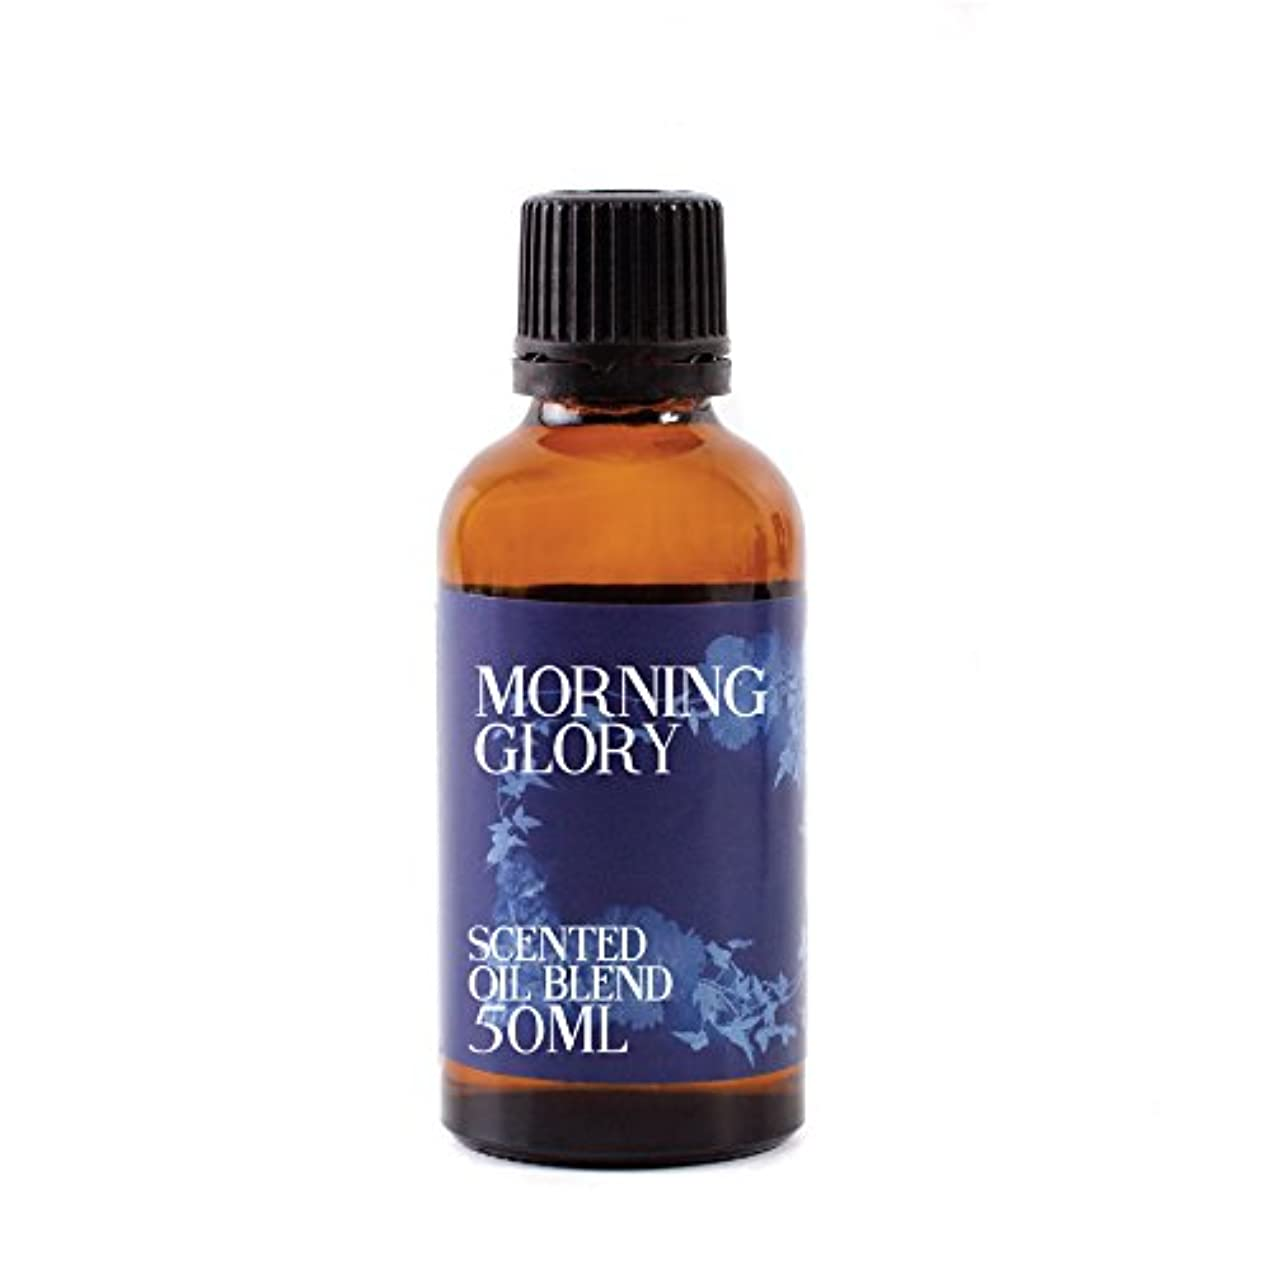 Mystic Moments | Morning Glory - Scented Oil Blend - 50ml